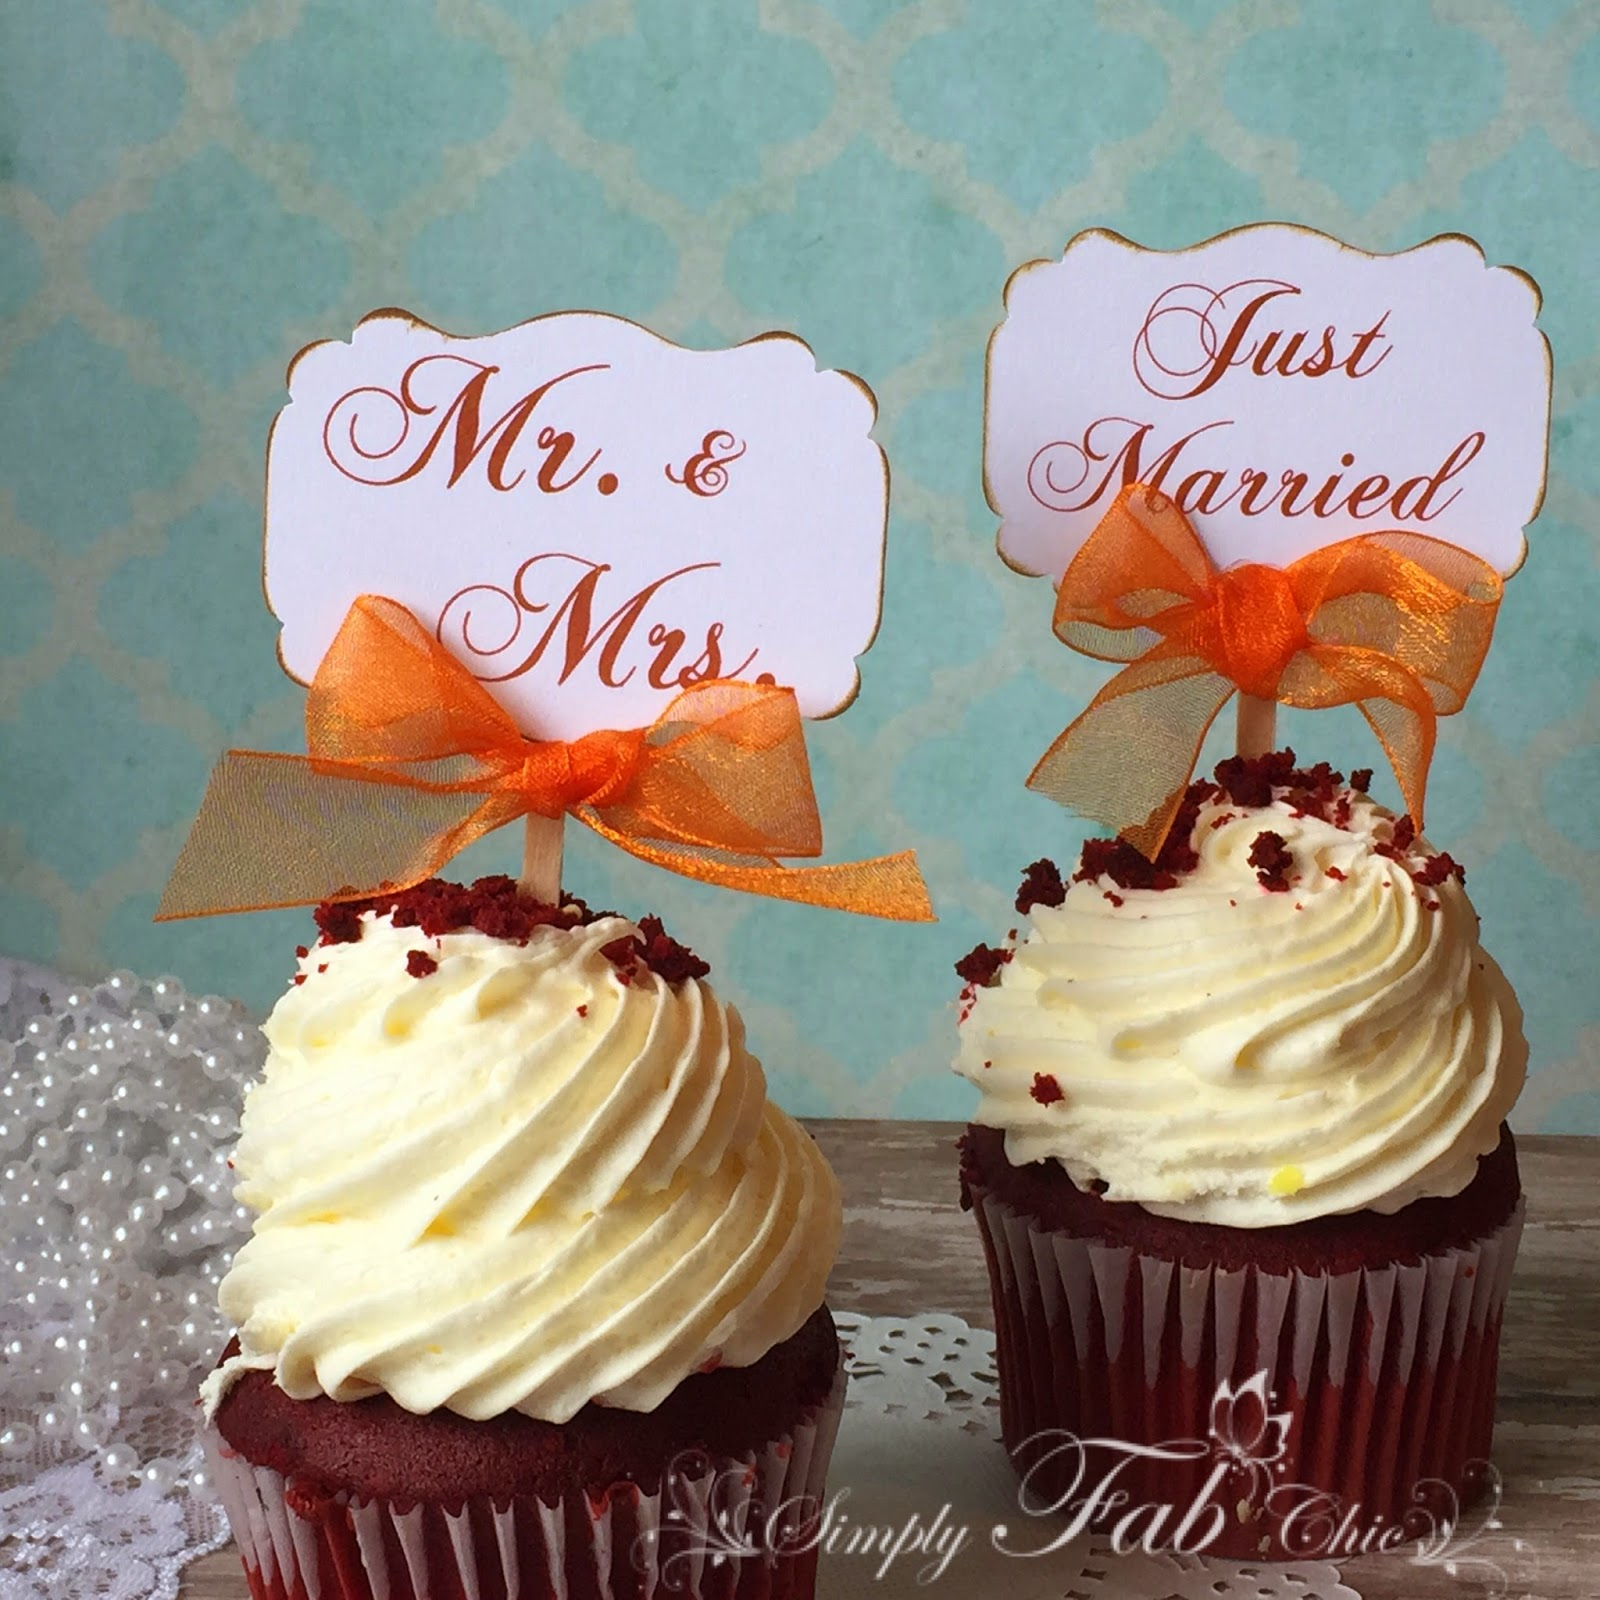 Shabby chic wedding cupcake toppers simply fab chic mr and mrs shabby chic vintage wedding cupcake toppers junglespirit Images